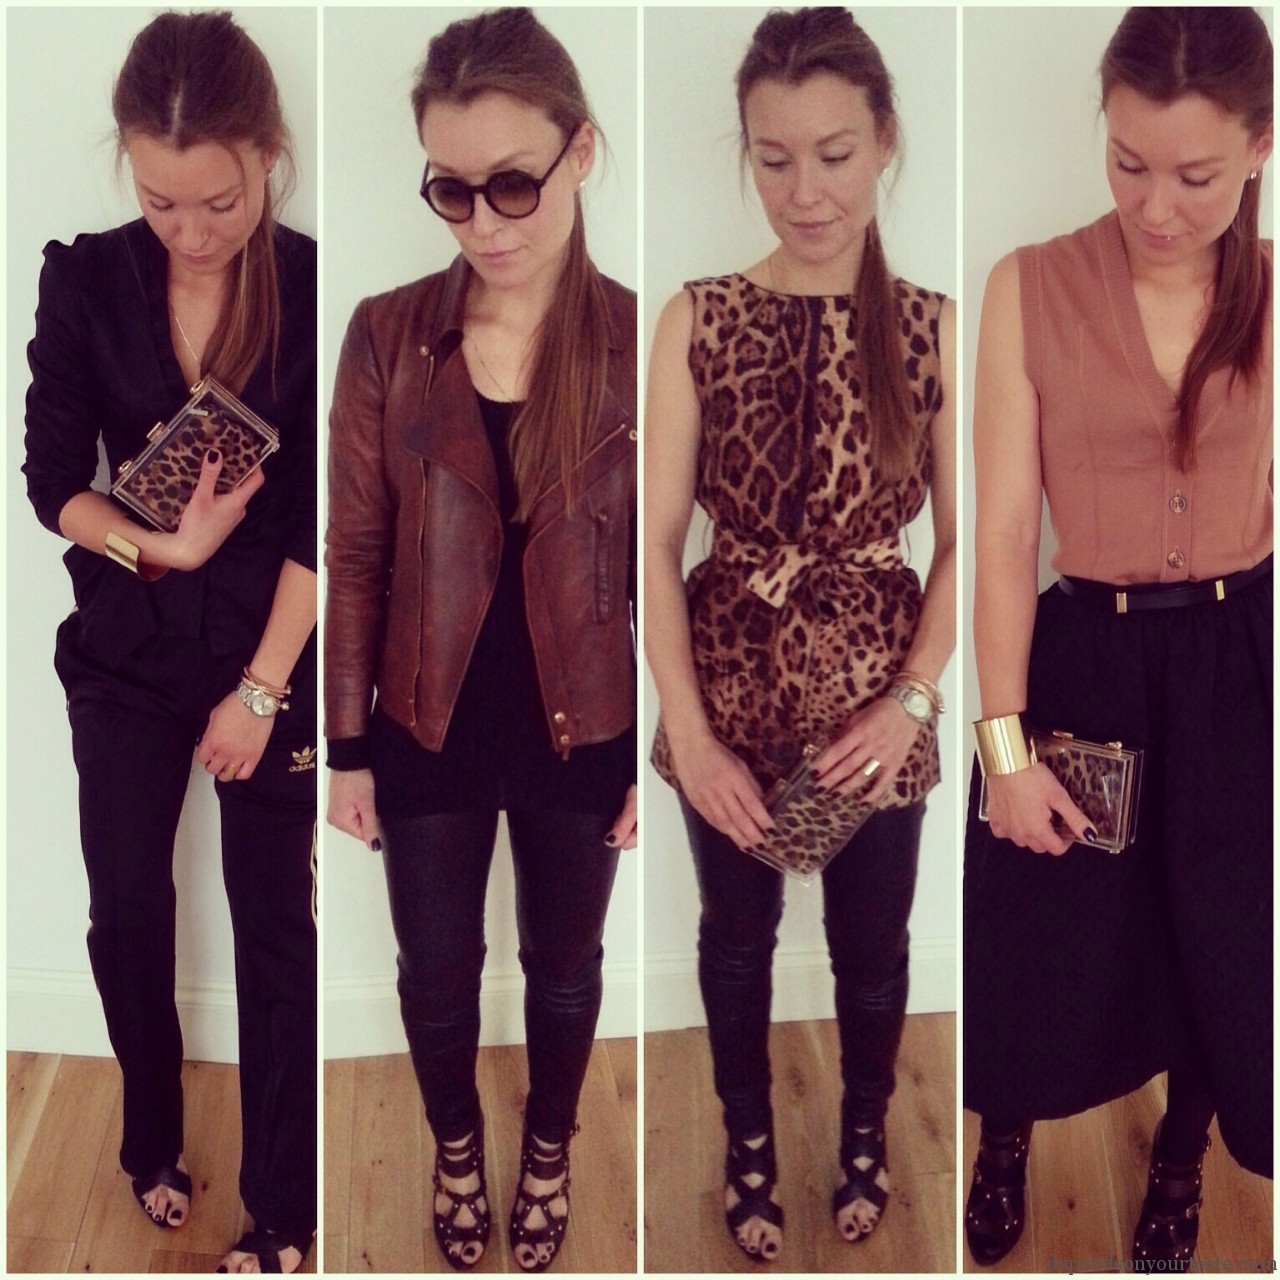 mix and match, brown and black, givenchy tshirt, ysl brown boots, gucci gladiator, givenchy black gladiator, leopard print silk dolce gabbana top , fashion looks,